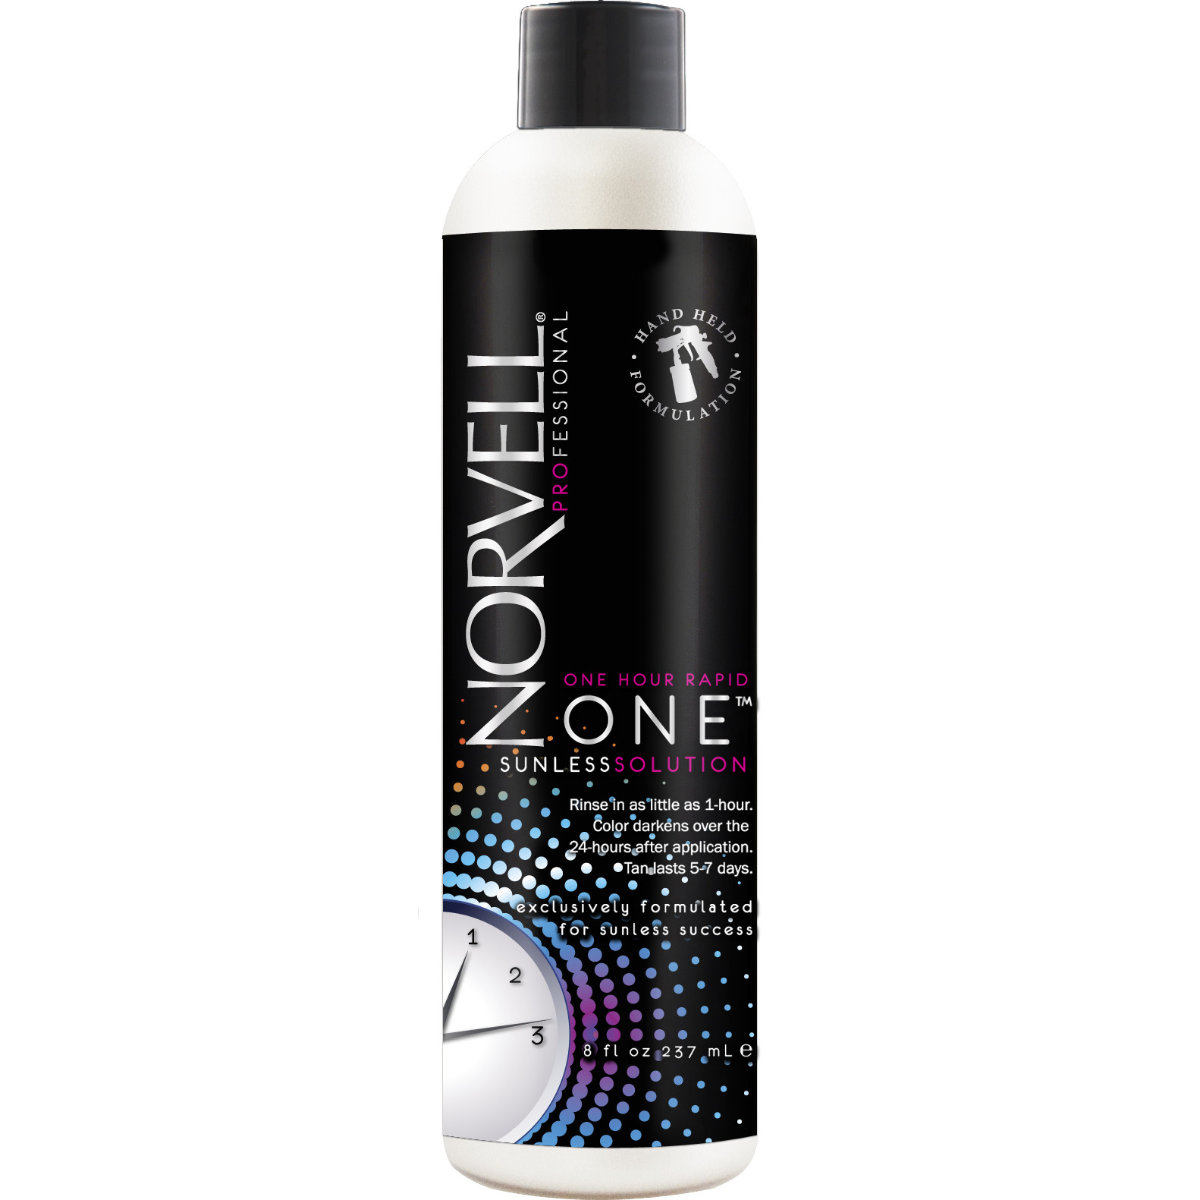 Norvell One Rapid Sunless Handheld Solution 8 Oz